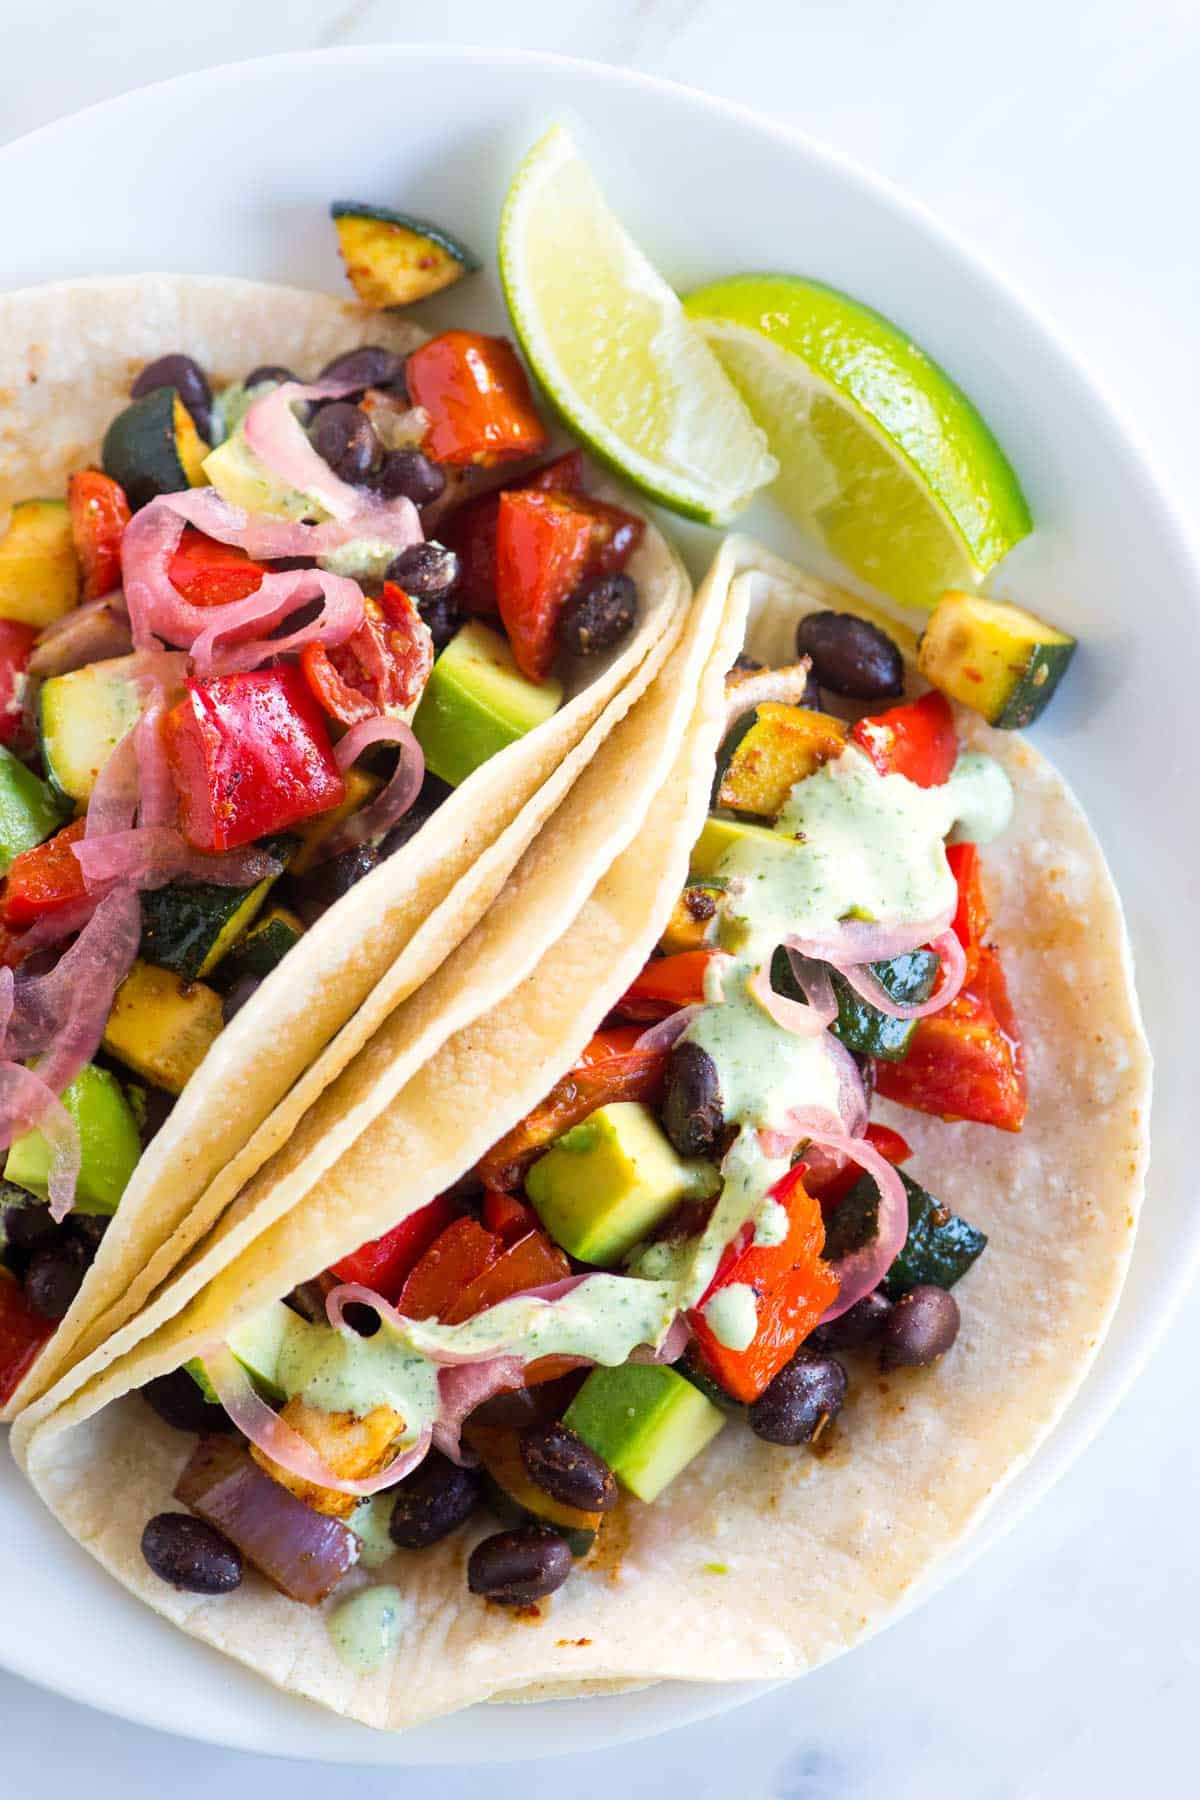 These vegetable tacos could not be easier and are perfect for quick mid-week meals. Both the vegetables and sauce can be made days in advance.